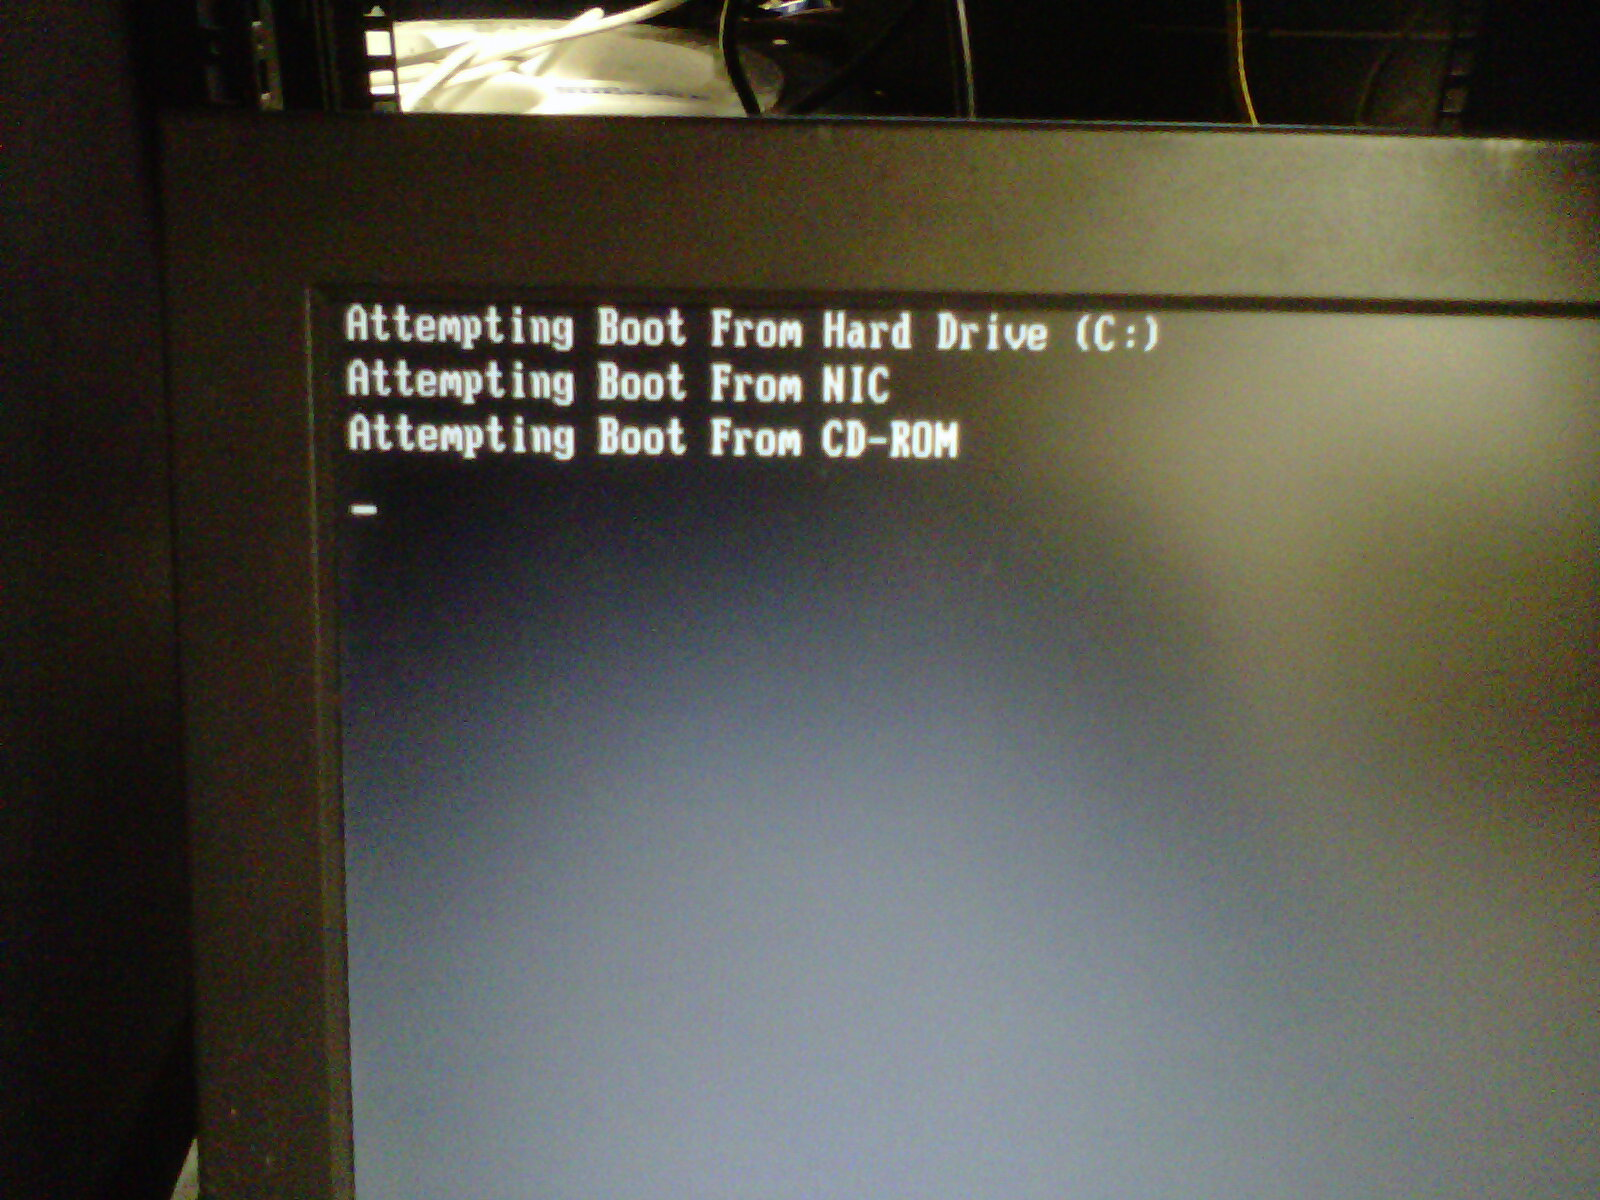 Booting from USB DVD on DL380 G4